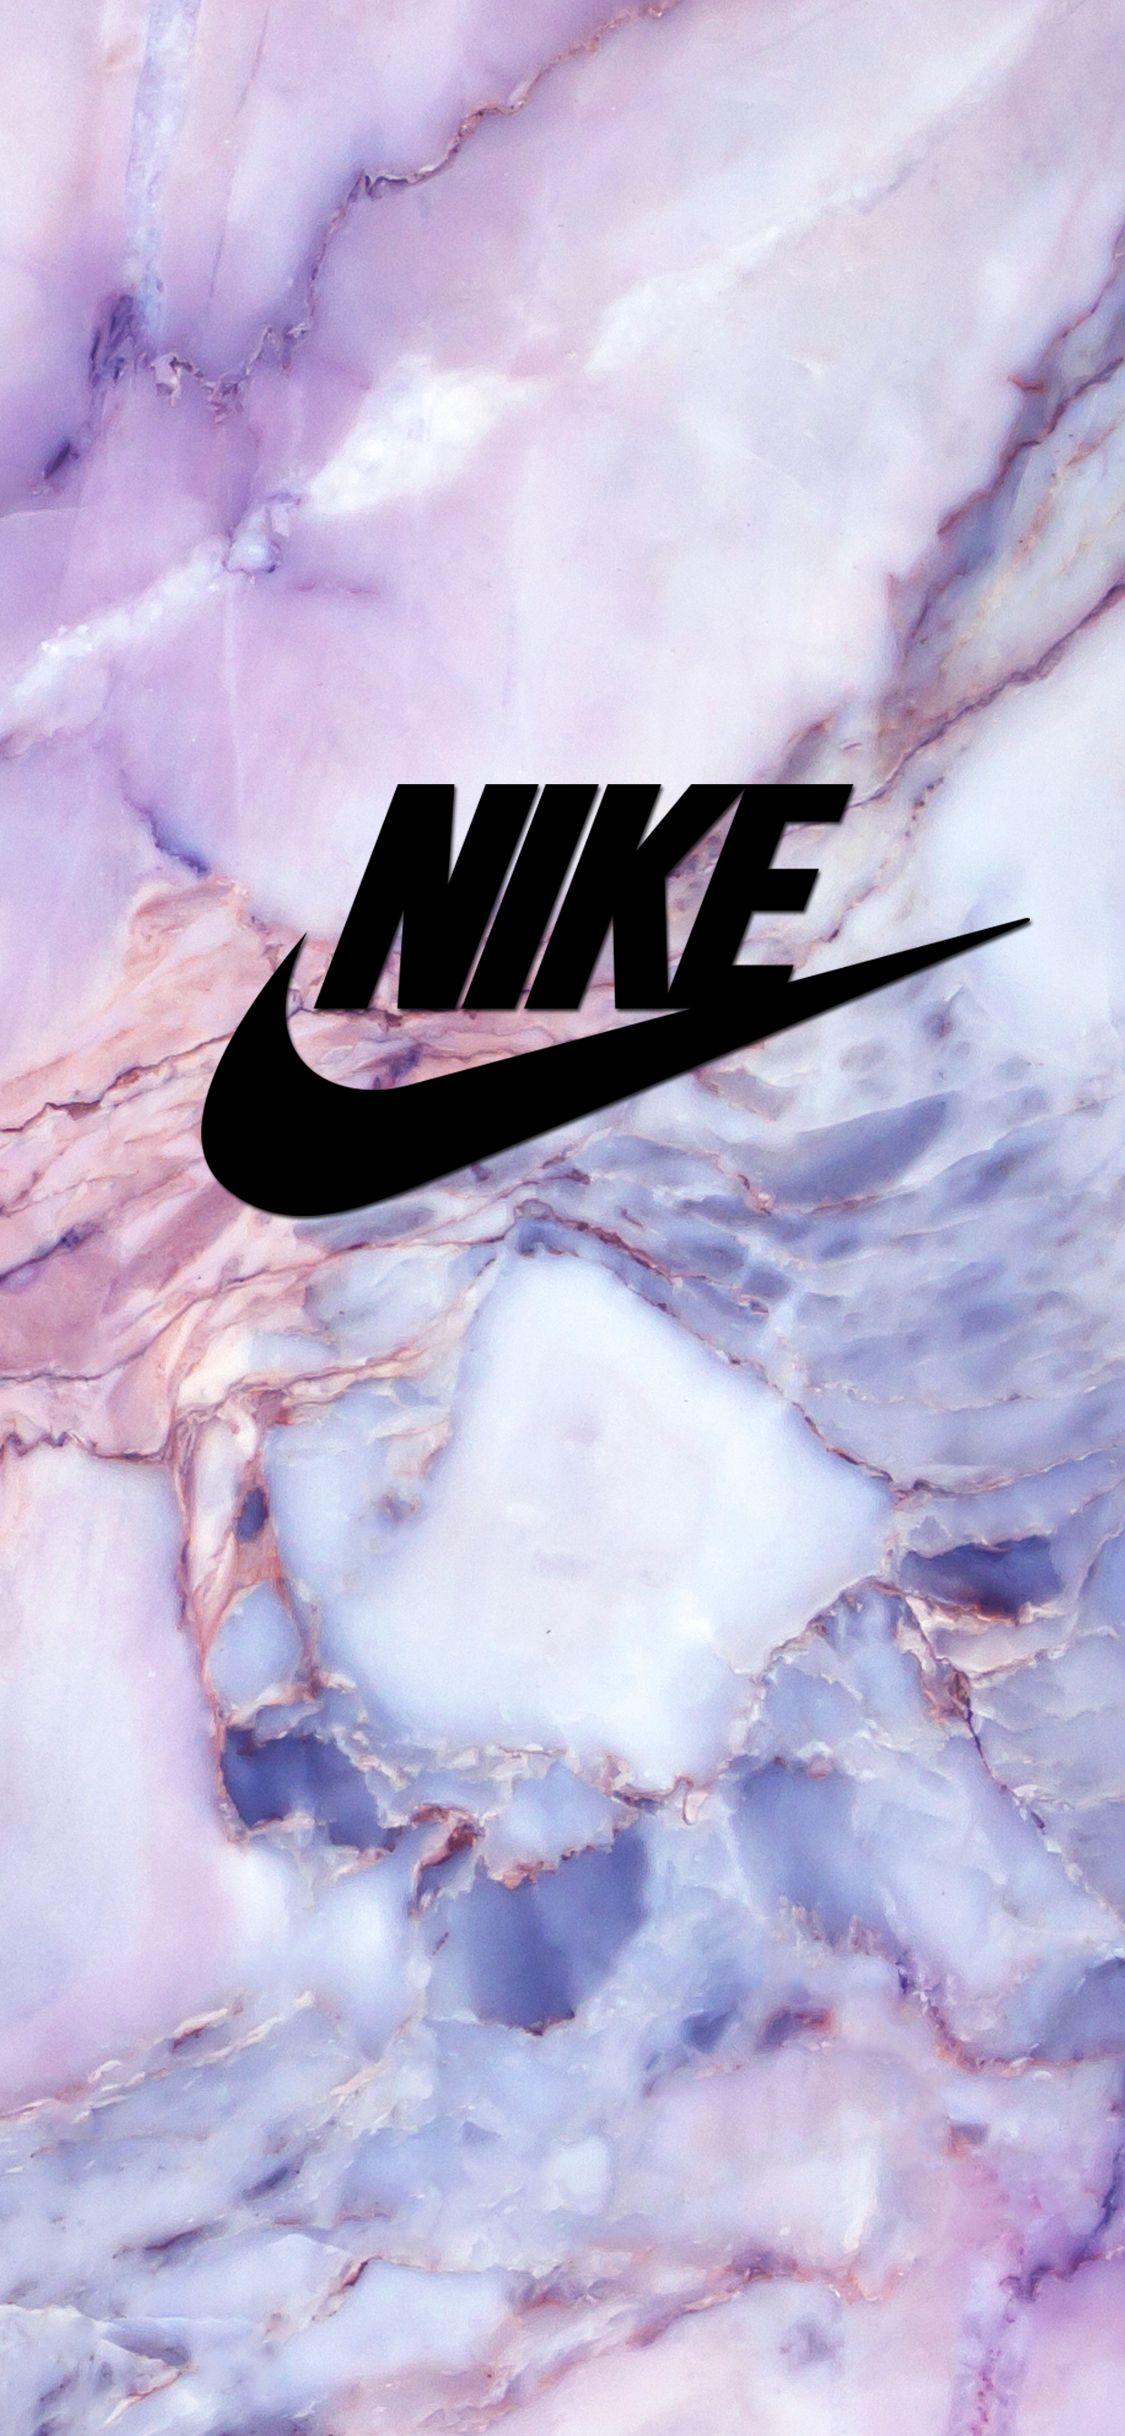 Nike Iphone X Wallpaper You Can Order Iphone Case With This Picture Just Cl Iphone Lockscreen Wallpaper Nike Wallpaper Backgrounds Iphone Wallpaper Vintage